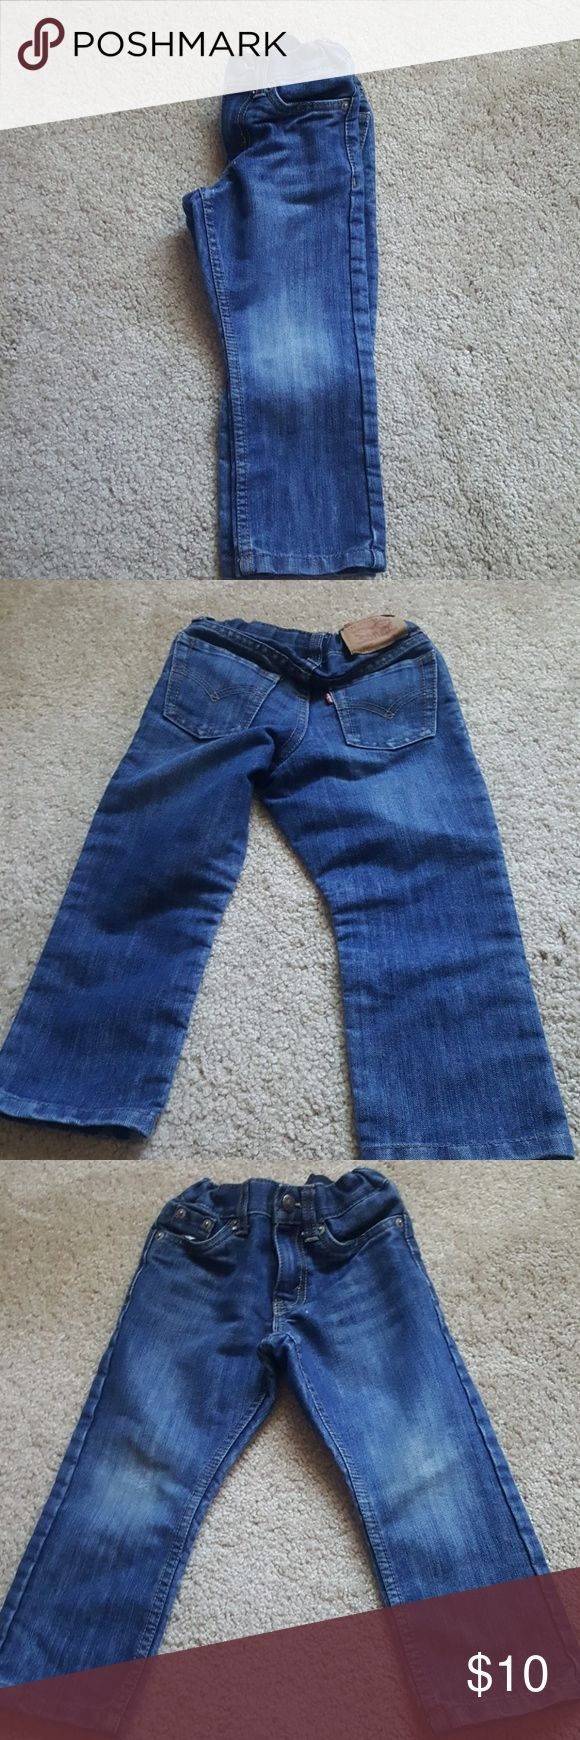 Boys Levis  511 slim jeans Gently used 2T Levis Levi's Bottoms Jeans